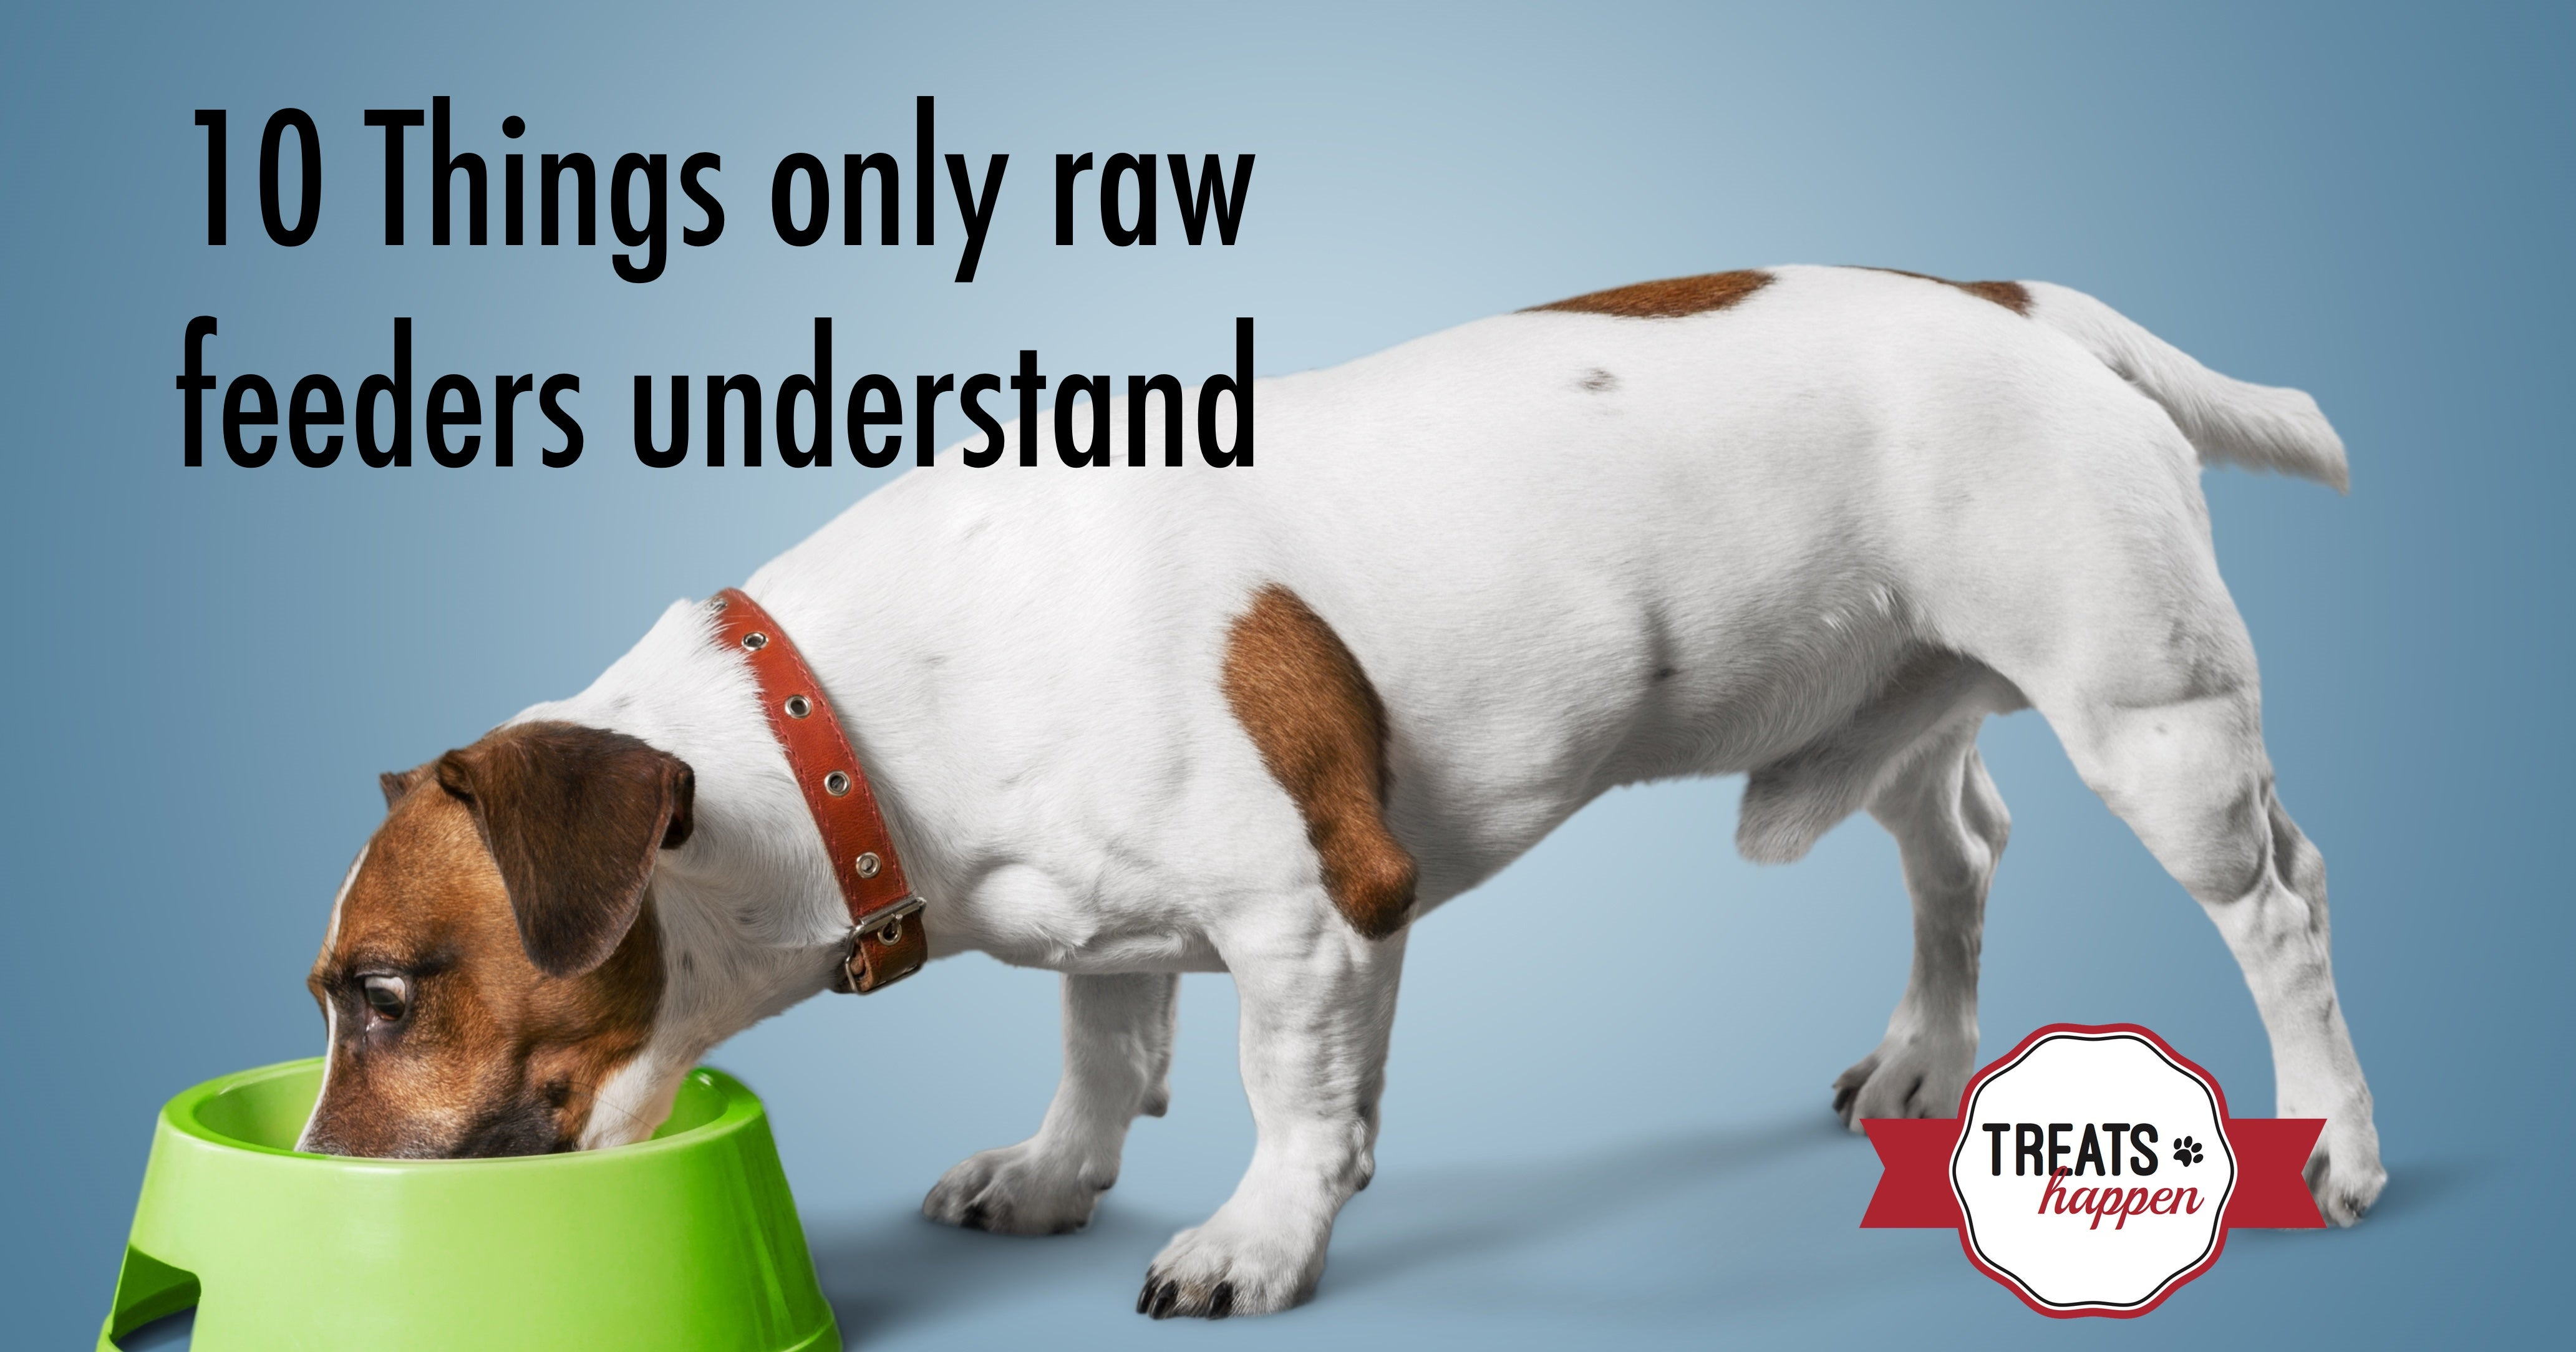 10 Things only raw feeders understand from Treats Happen